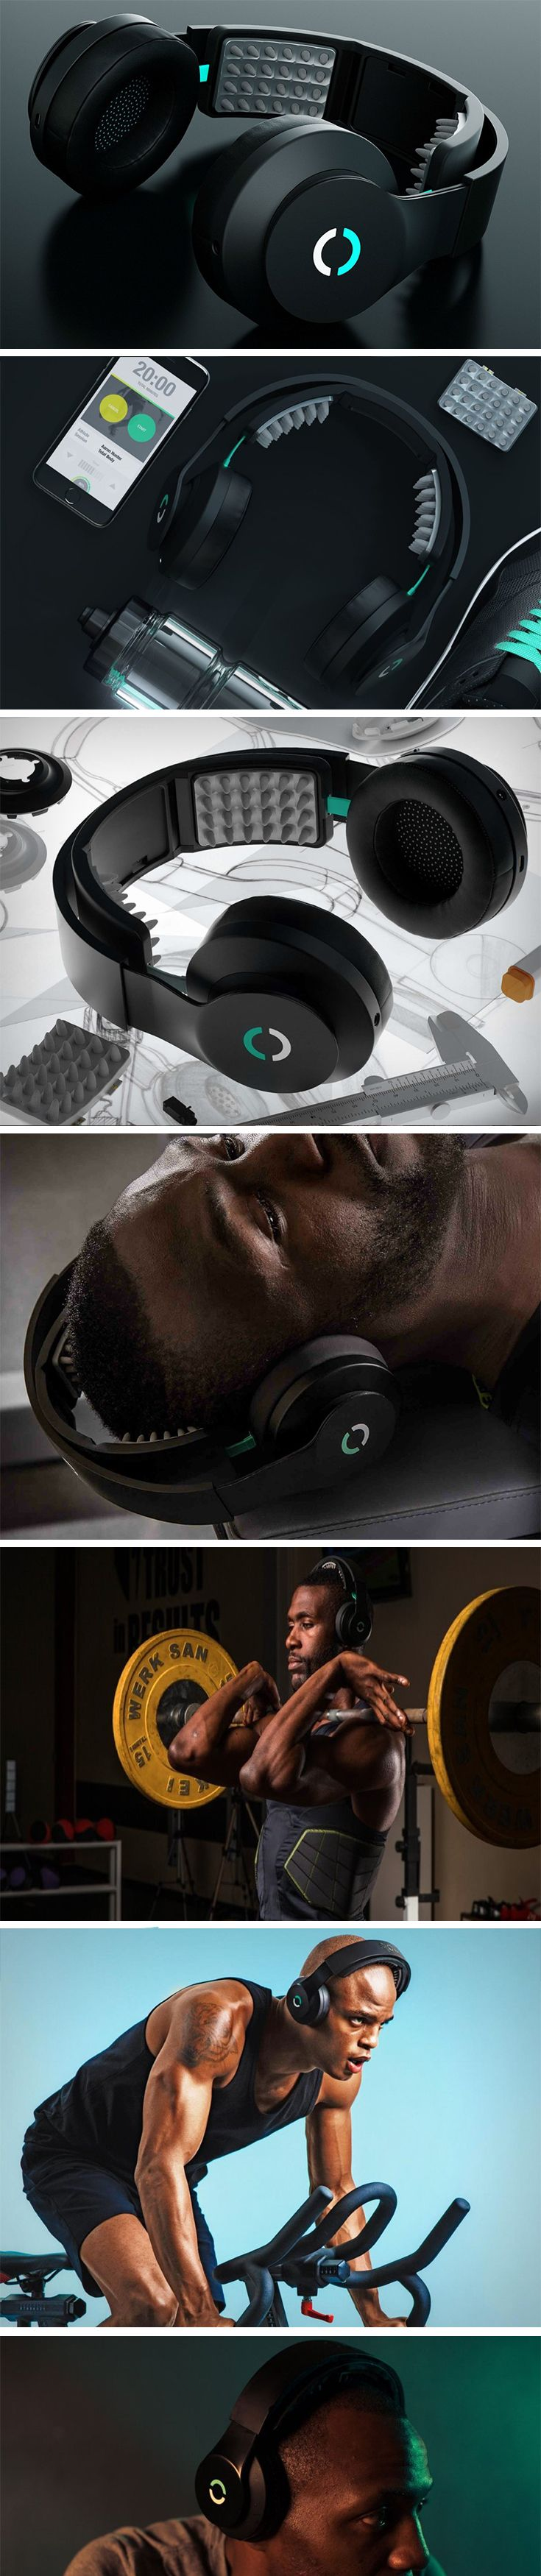 "The Halo Sport isn't going to prime you to lift cars, walk on red hot coals, or swim a river, but these headphones can do something pretty marvelous. Designed like normal headphones to be worn during training, these cans come with two brain-stimulating pads that can help you boost your performance by sending mild electric tingles to get the motor cortex of your brain in a state of ""neural plasticity"". BUY NOW!"